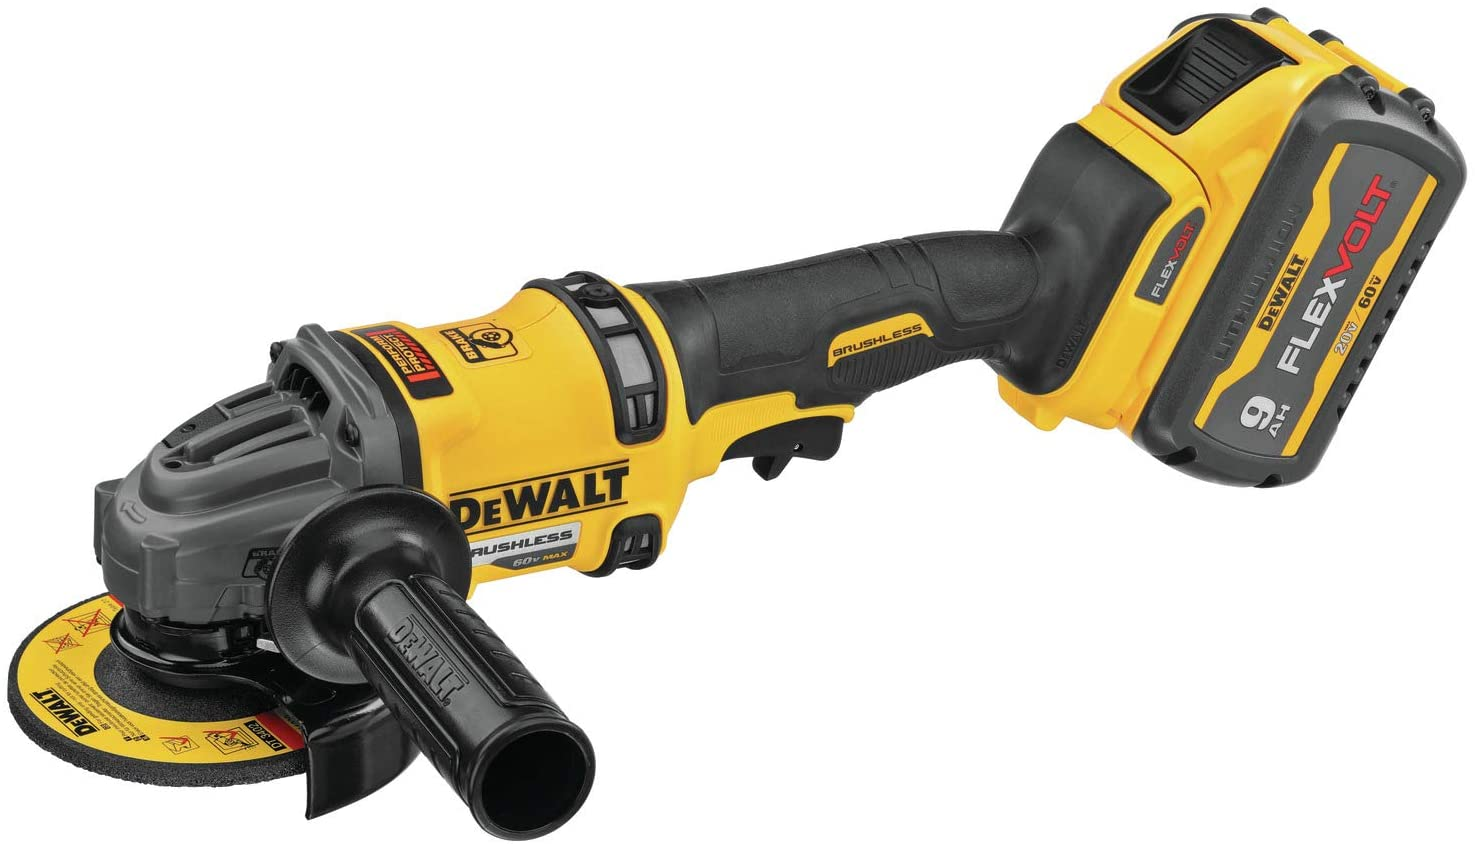 Dewalt DCG418X2 Flexvolt 60V MAX Brushless 4-1/2 In. - 6 In. Cordless Grinder With Kickback Brake Kit